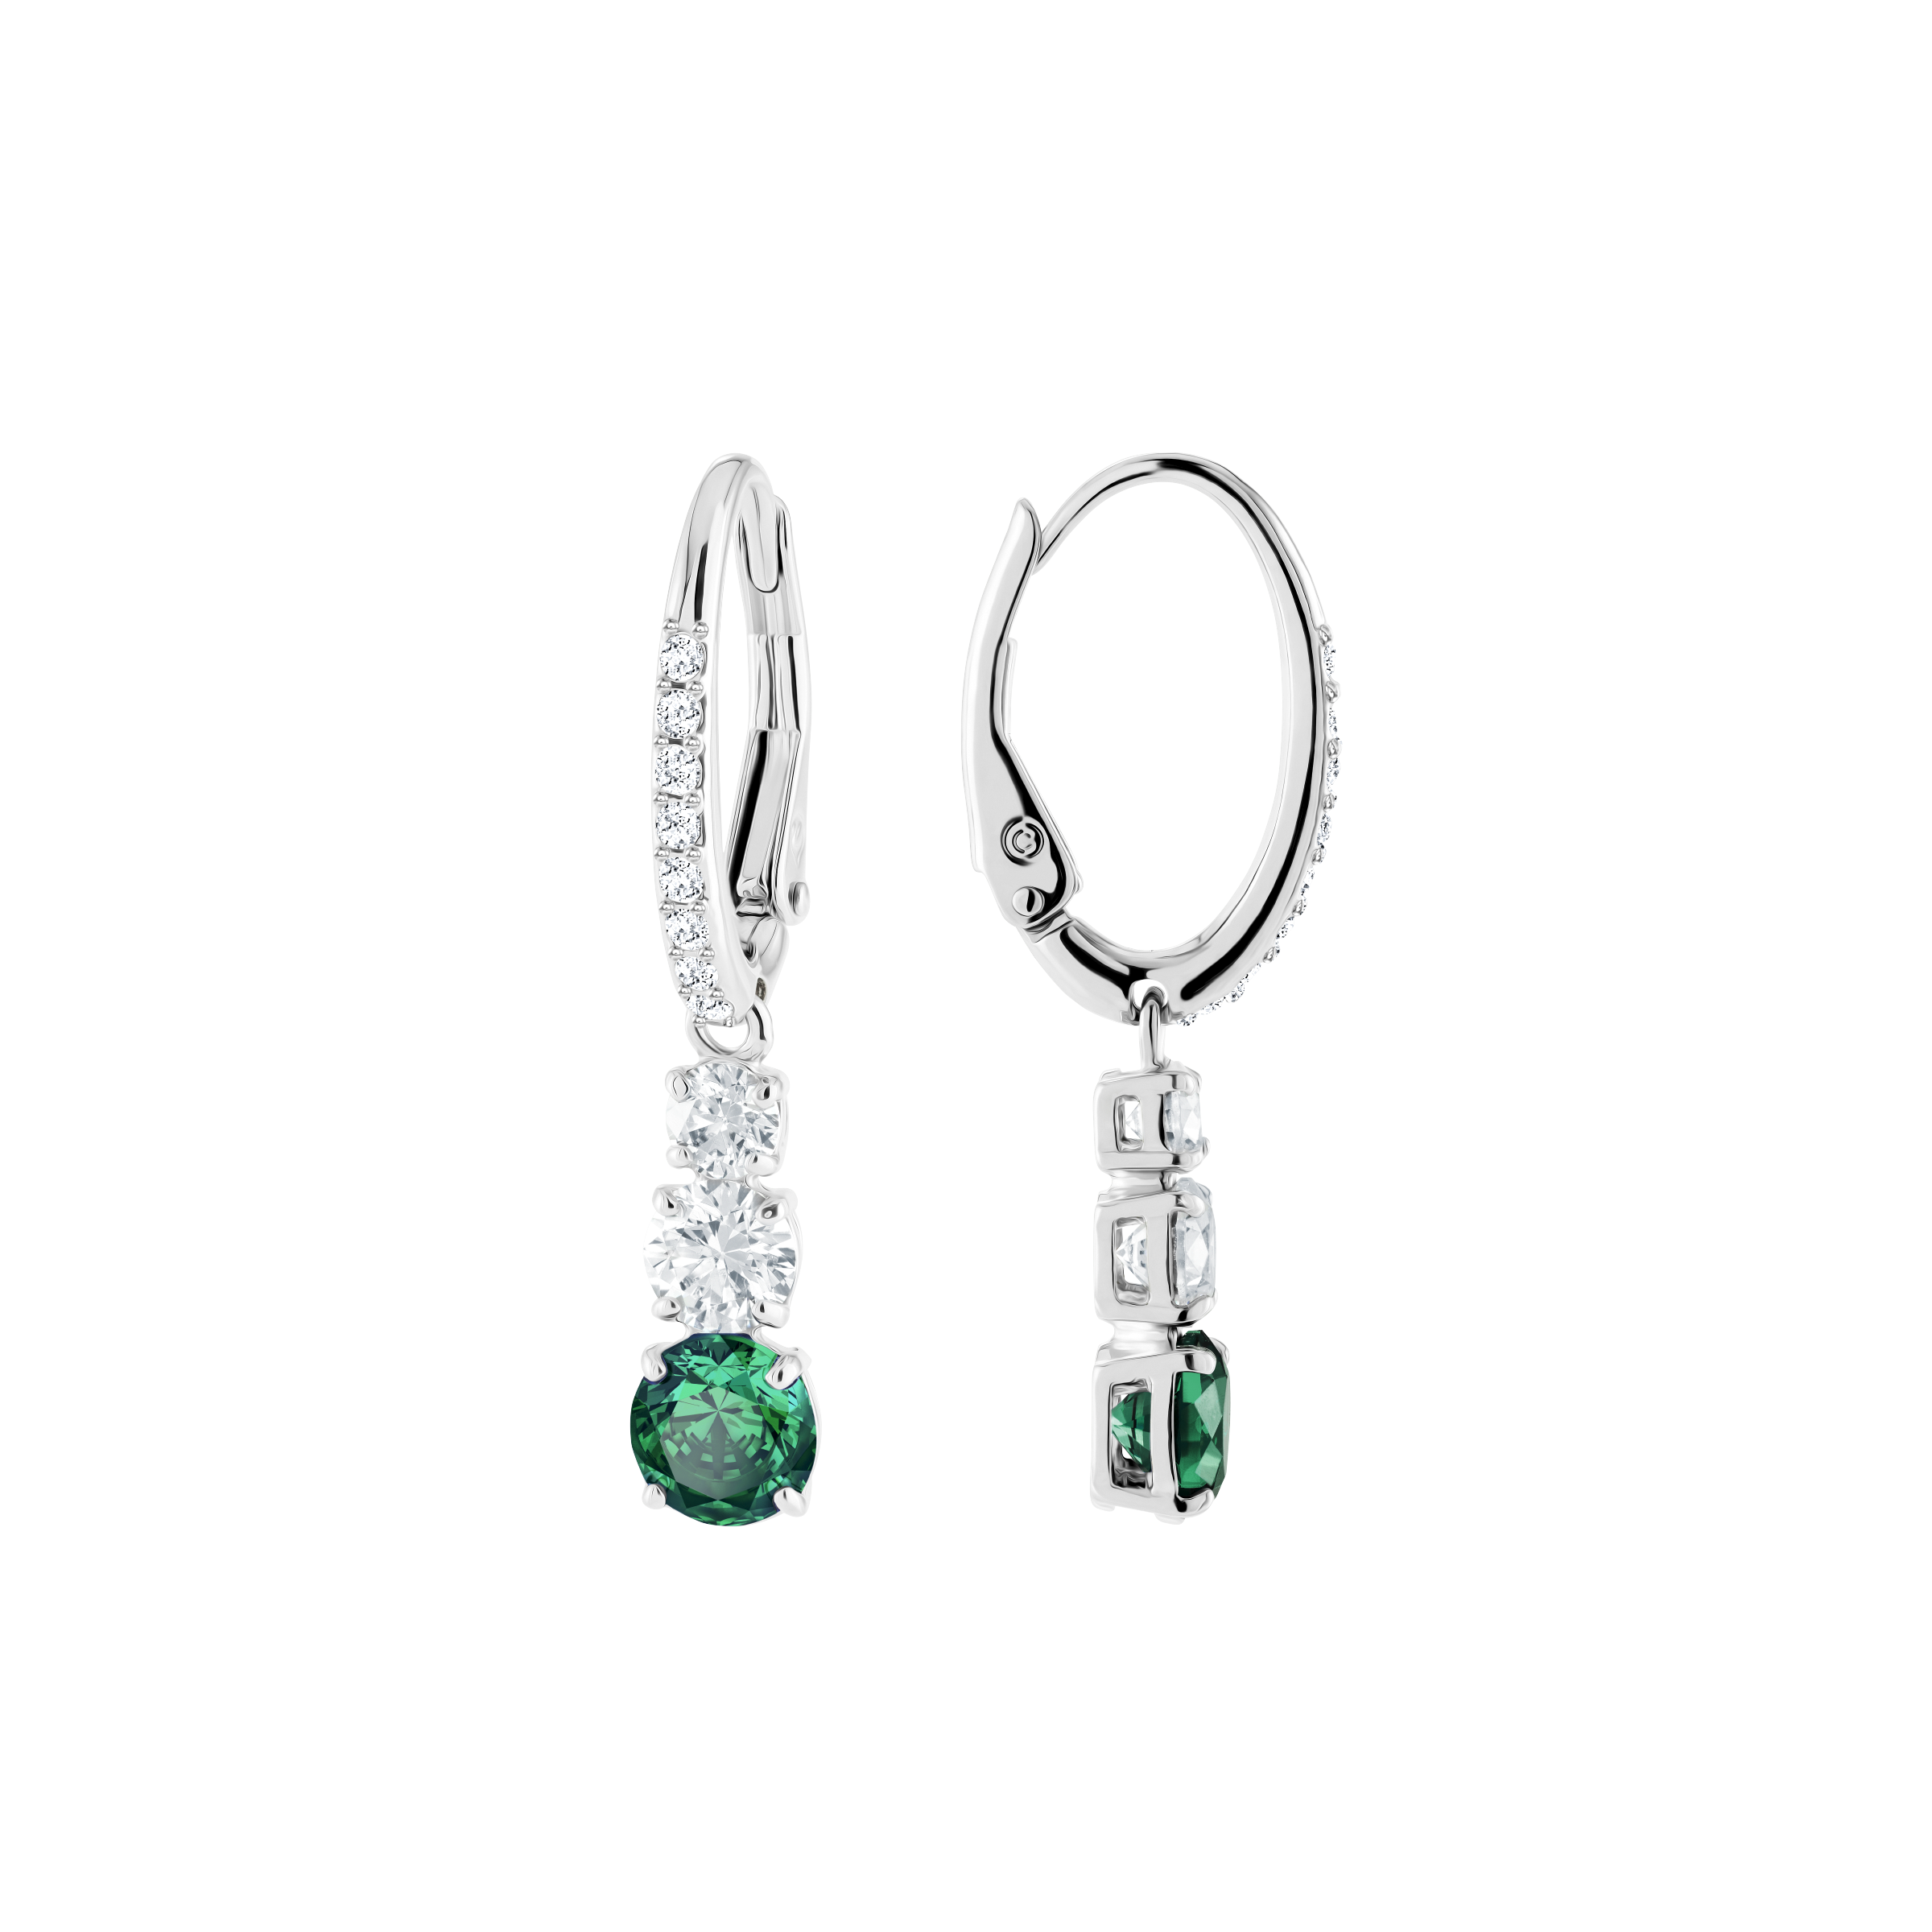 Attract Trilogy Round Pierced Earrings, Green, Rhodium Plating